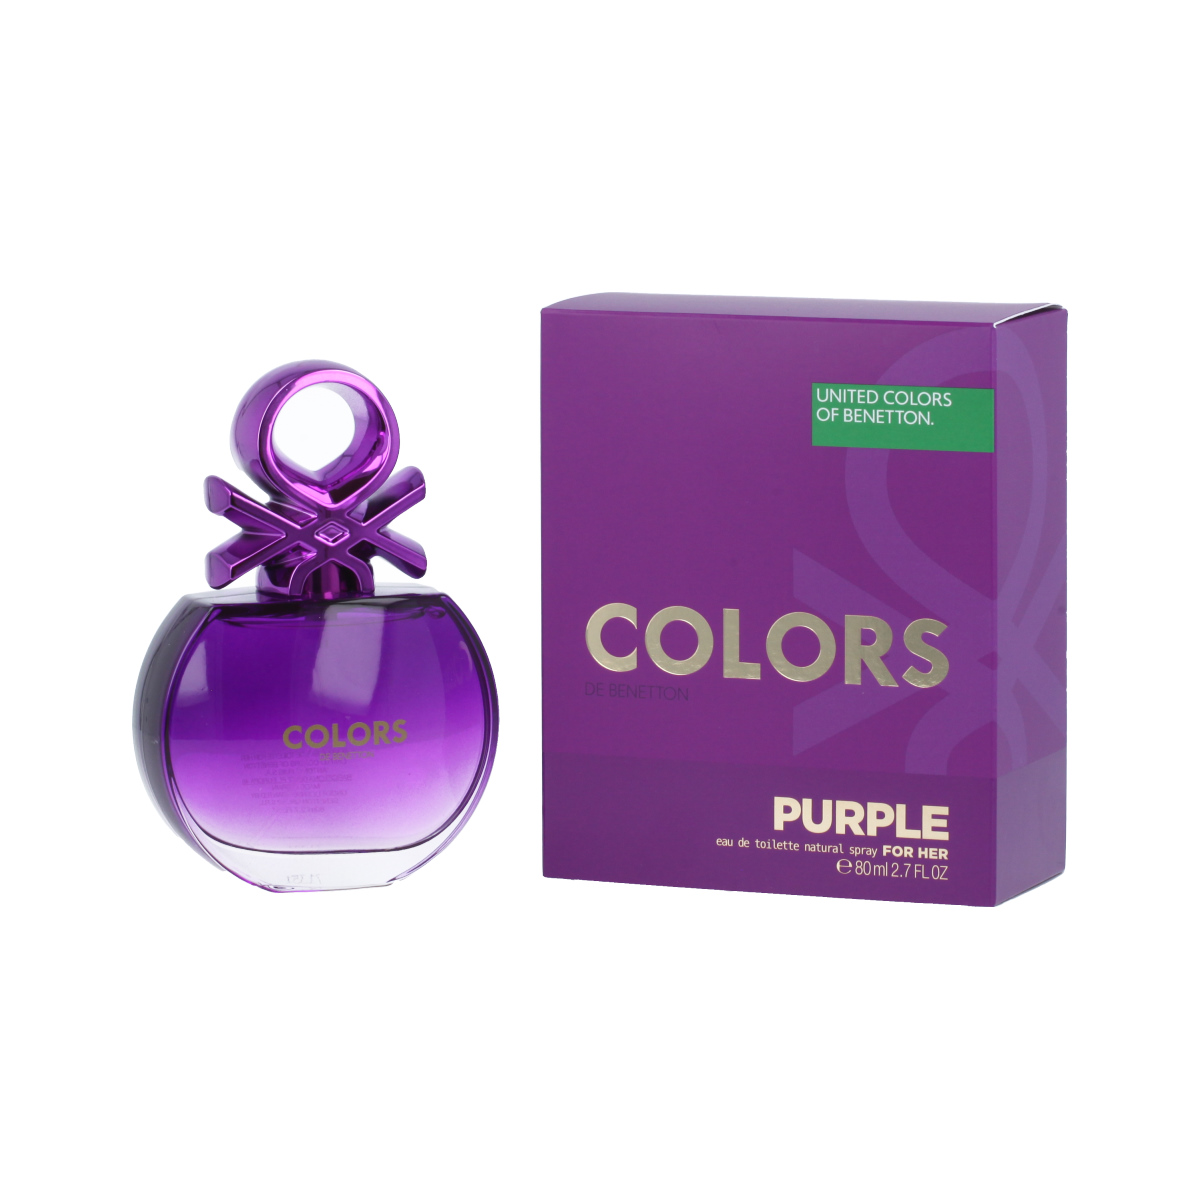 Benetton Colors de Benetton Purple Eau De Toilette 80 ml (woman) 96512